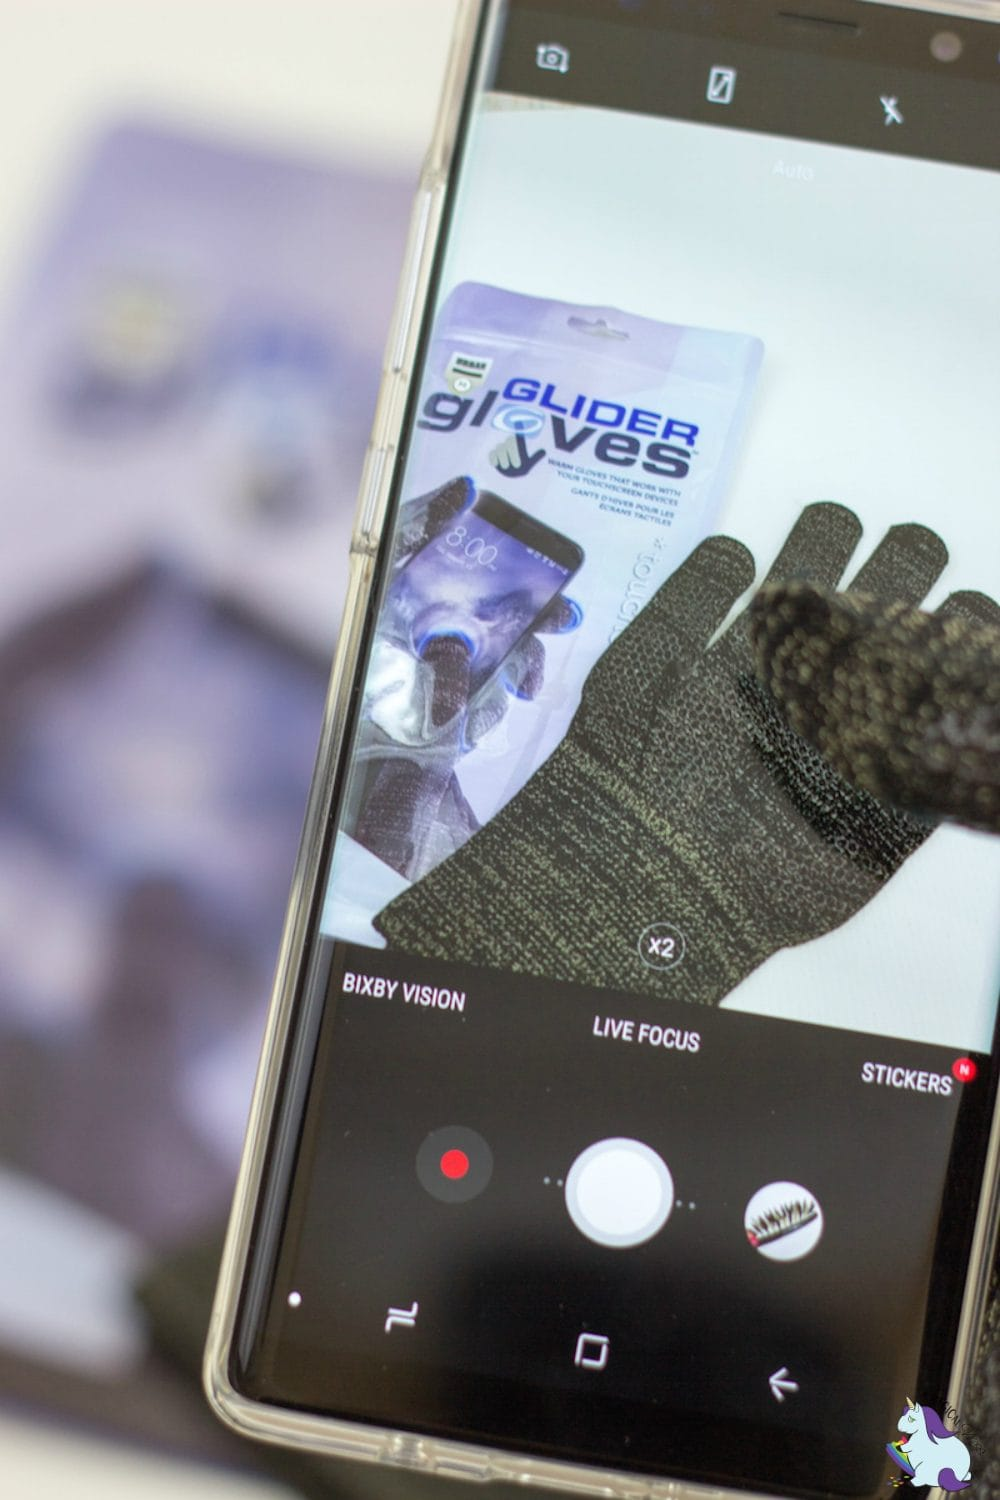 Glider Gloves Best Smartphone Accessories to Give as Gifts